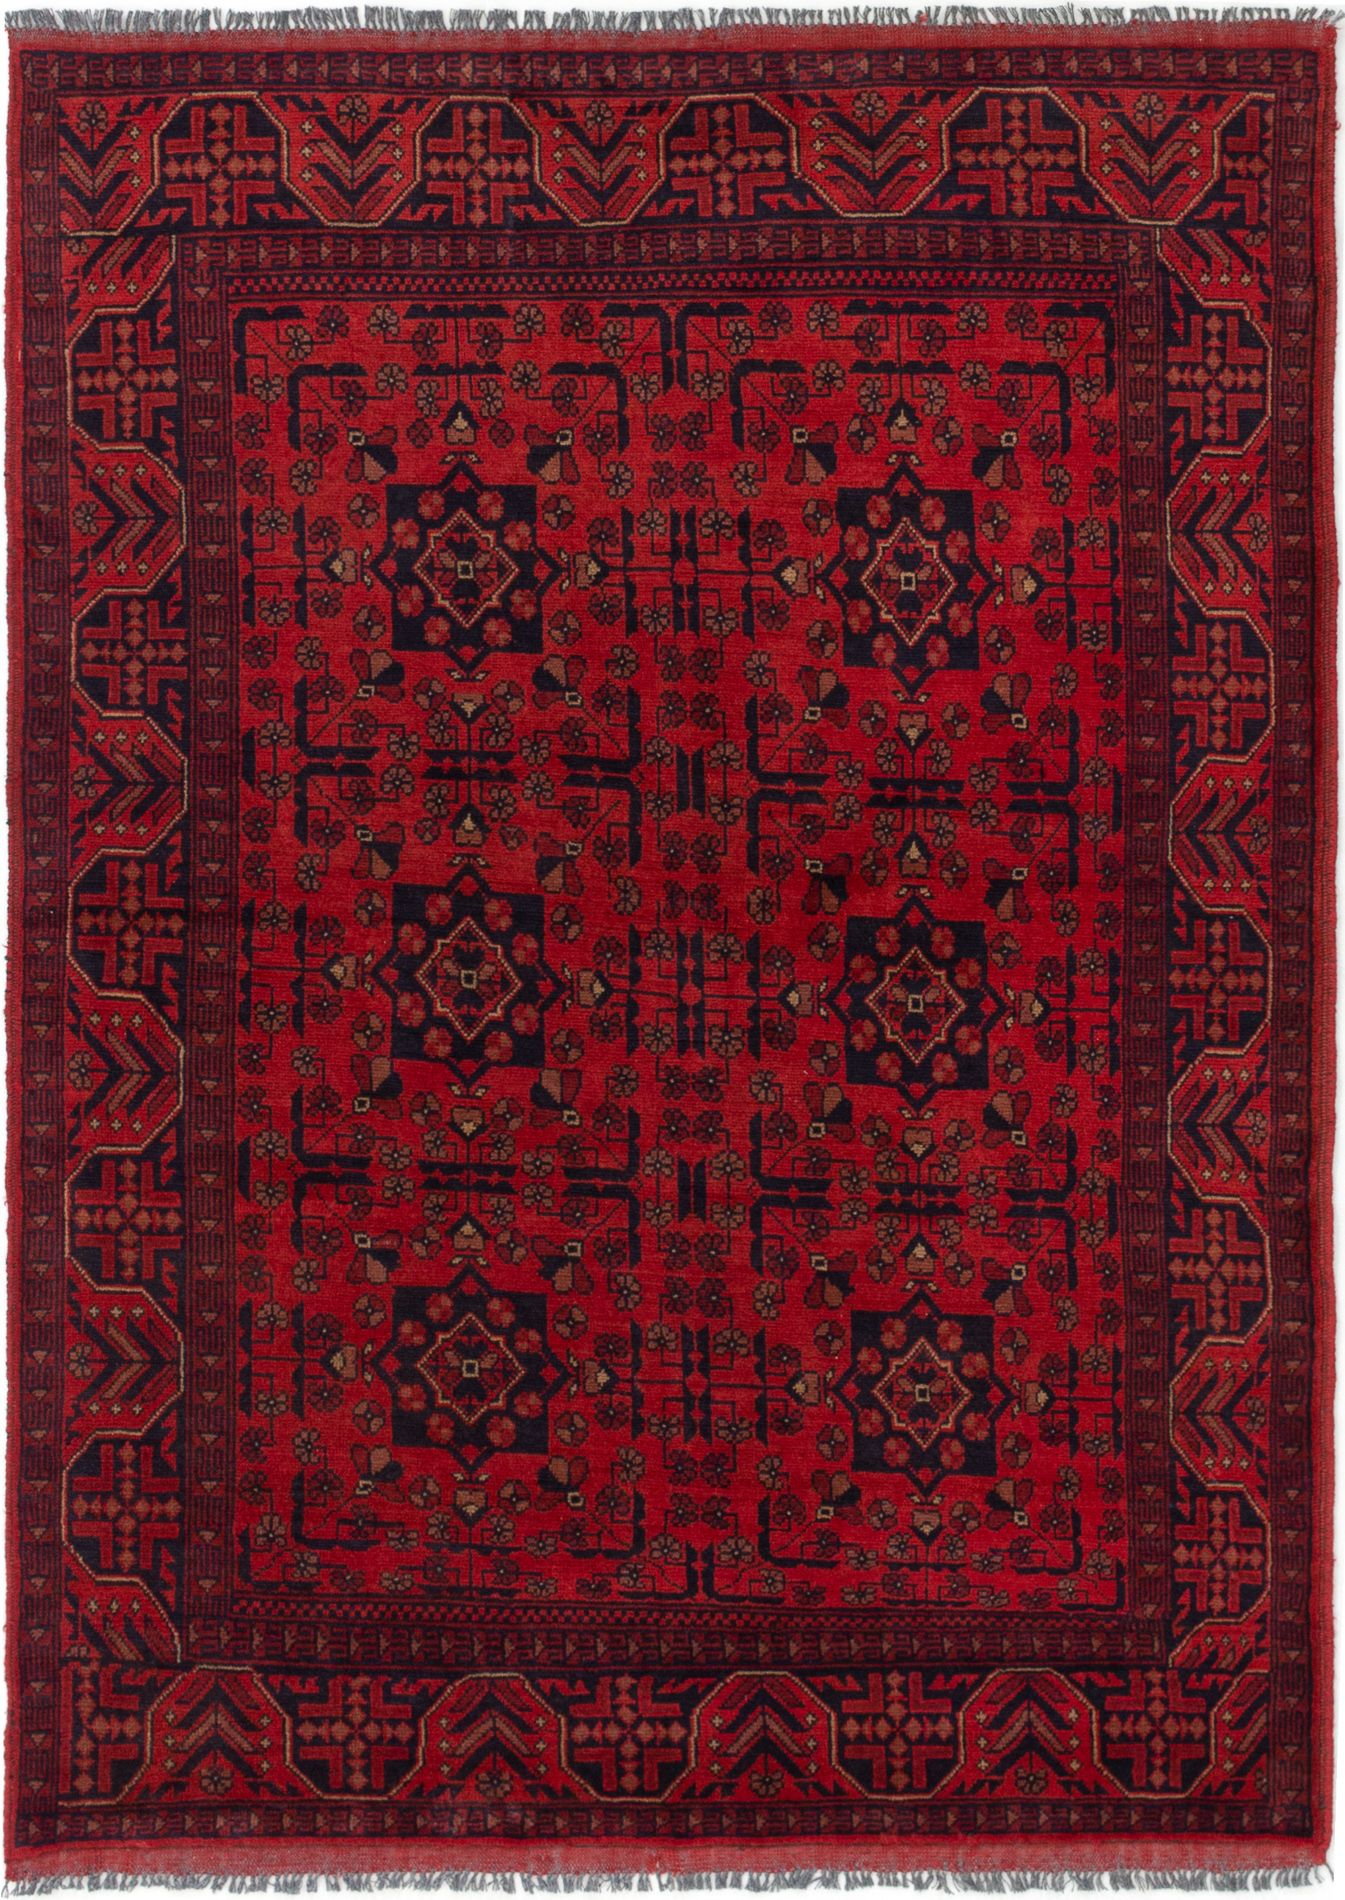 """Hand-knotted Finest Khal Mohammadi Red Wool Rug 4'10"""" x 6'9""""  Size: 4'10"""" x 6'9"""""""